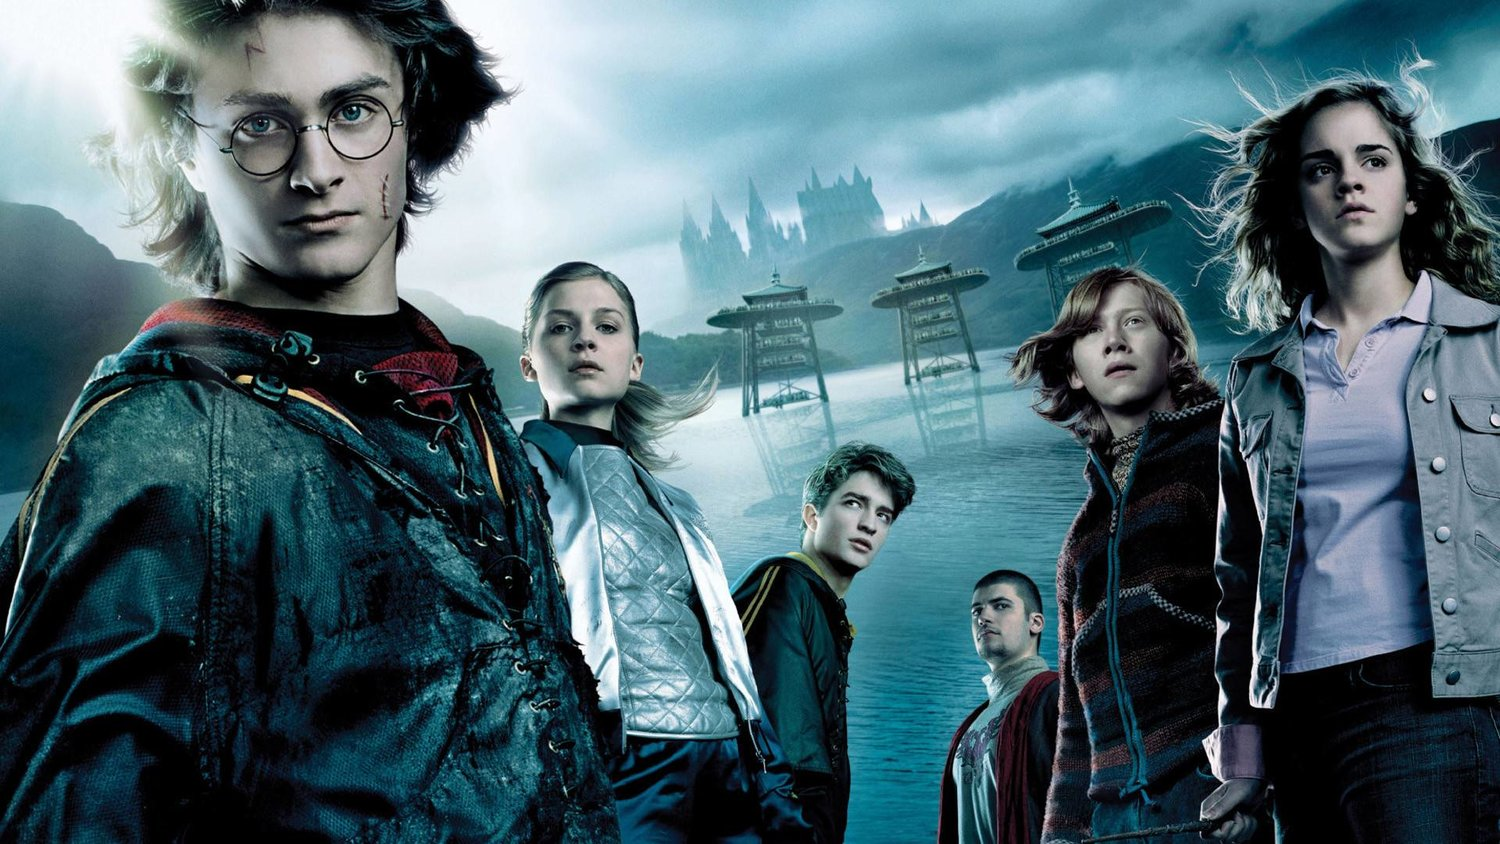 Learn How To Make Butterbeer And Other Harry Potter Treats With This Video Geektyrant